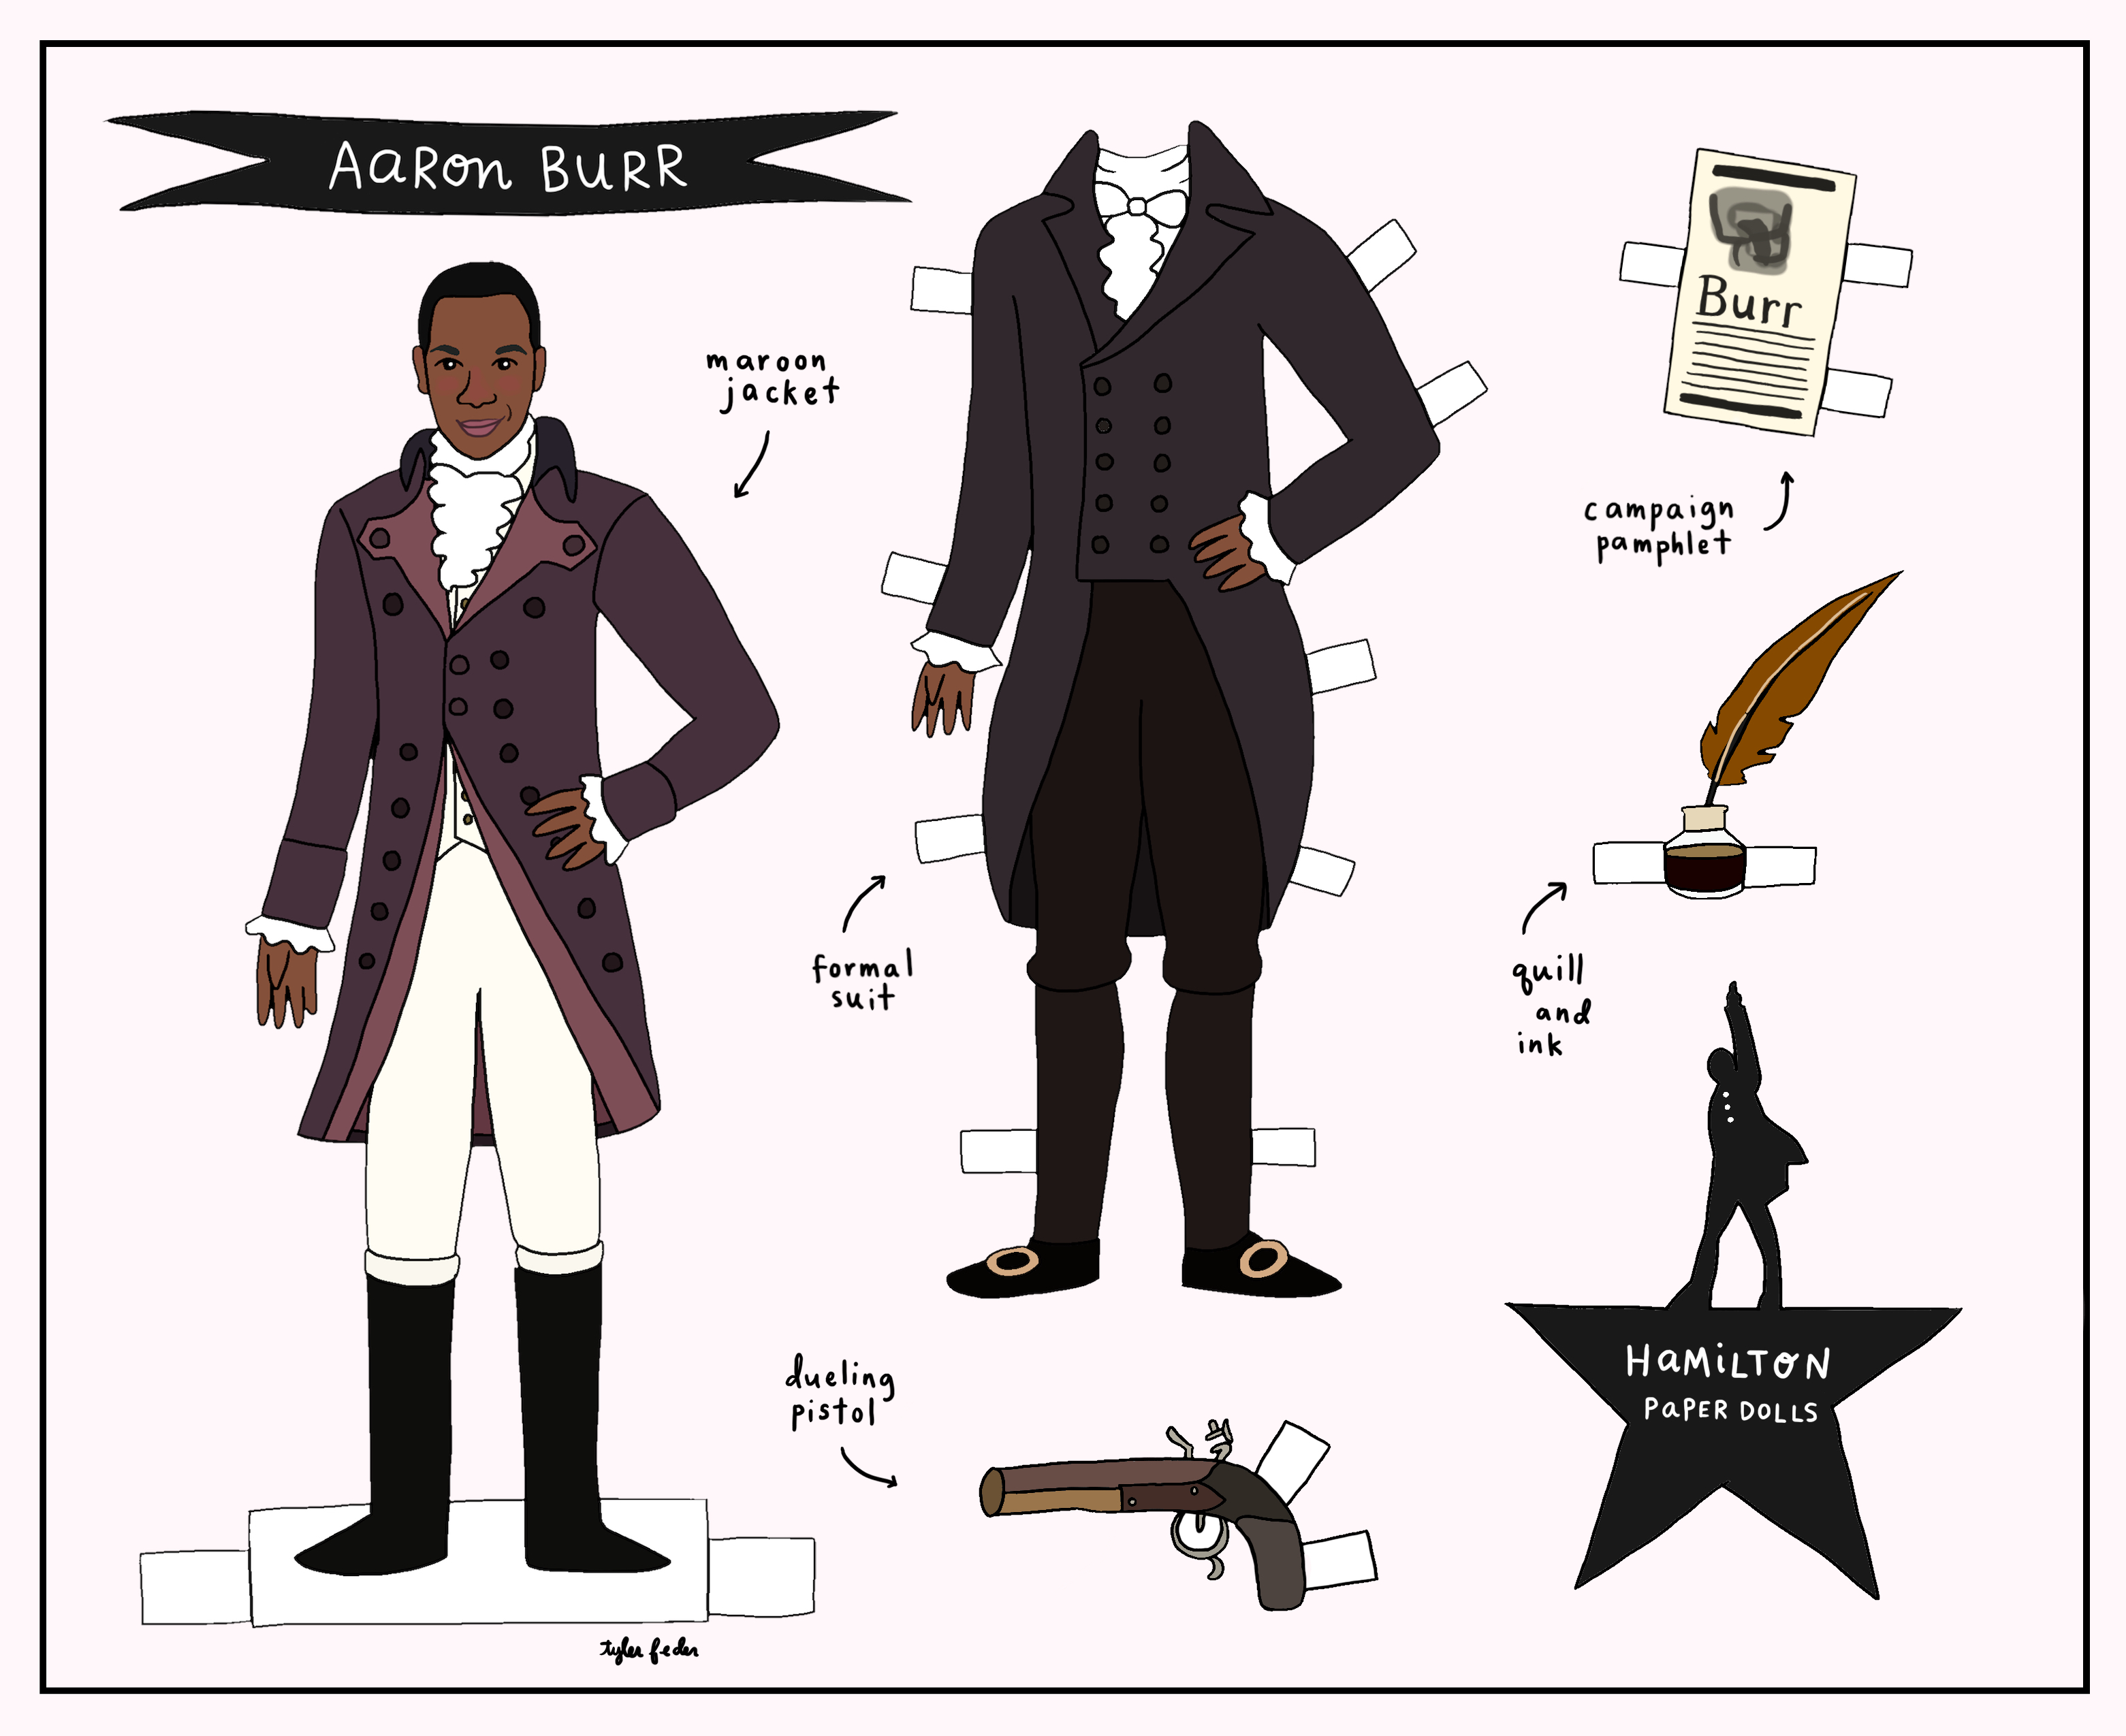 hamilton paper dolls for the hit broadway musical